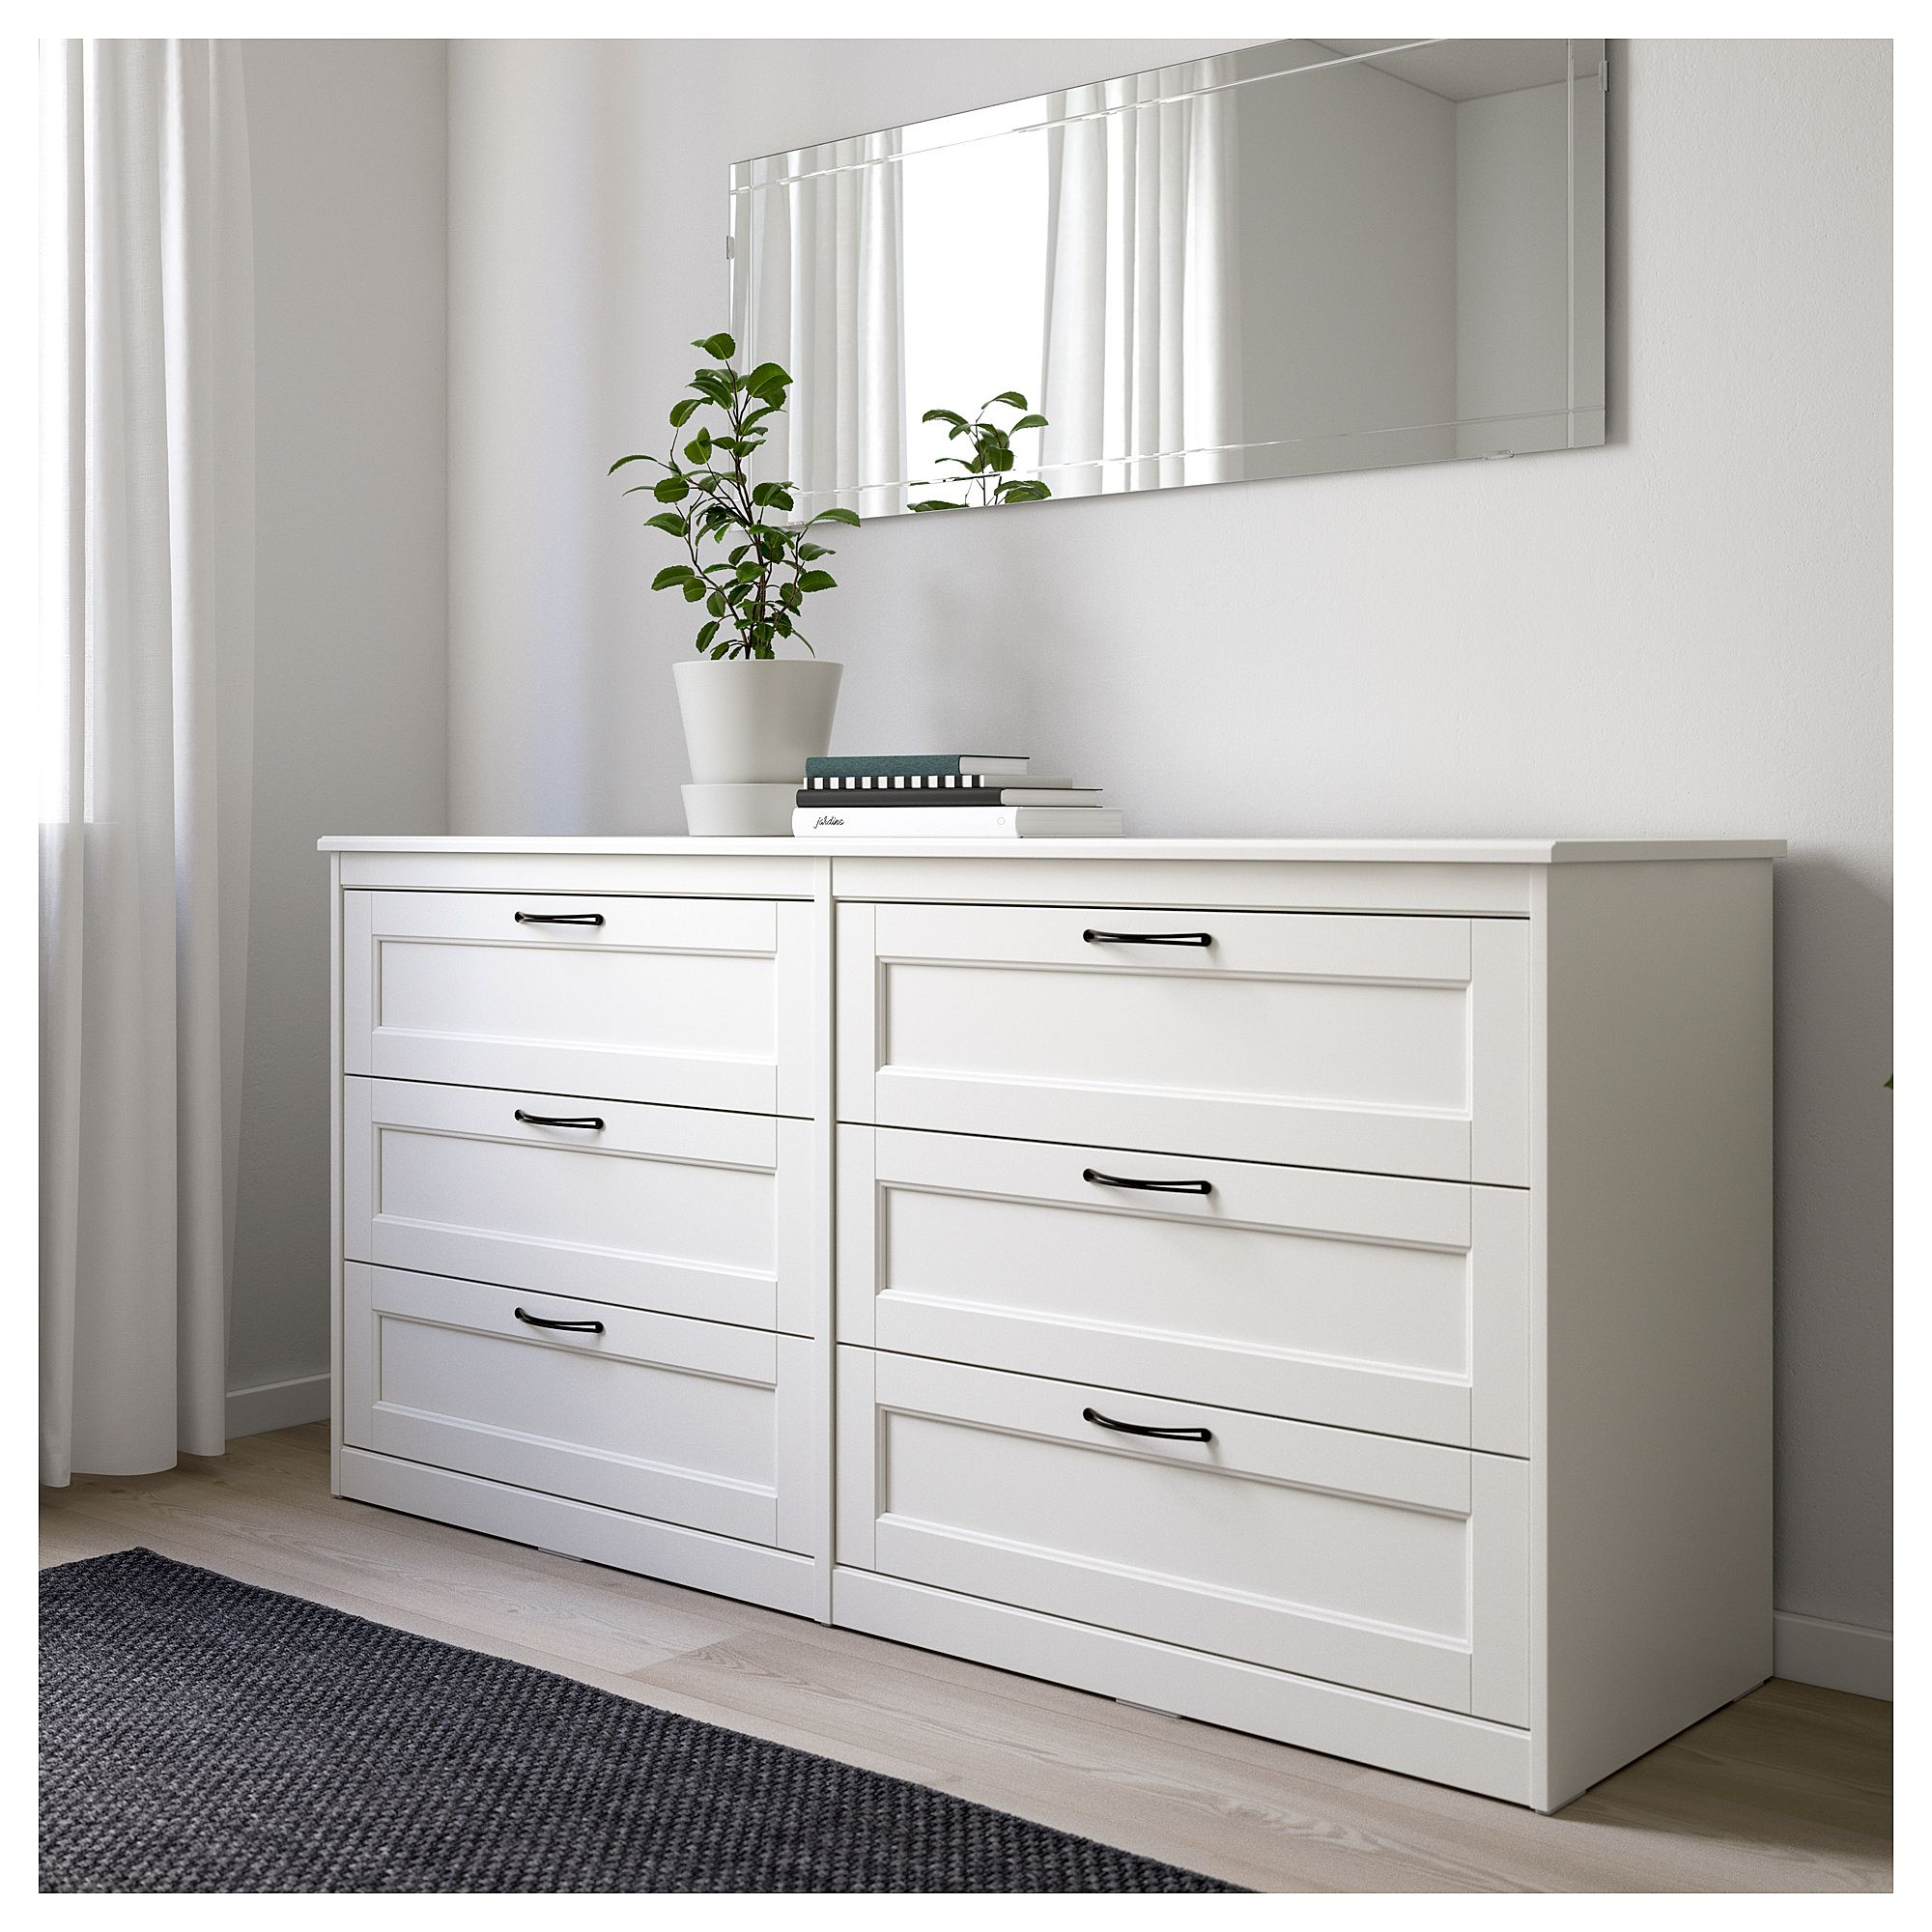 SONGESAND Chest of 6 drawers White IKEA | Mieszkanie ...